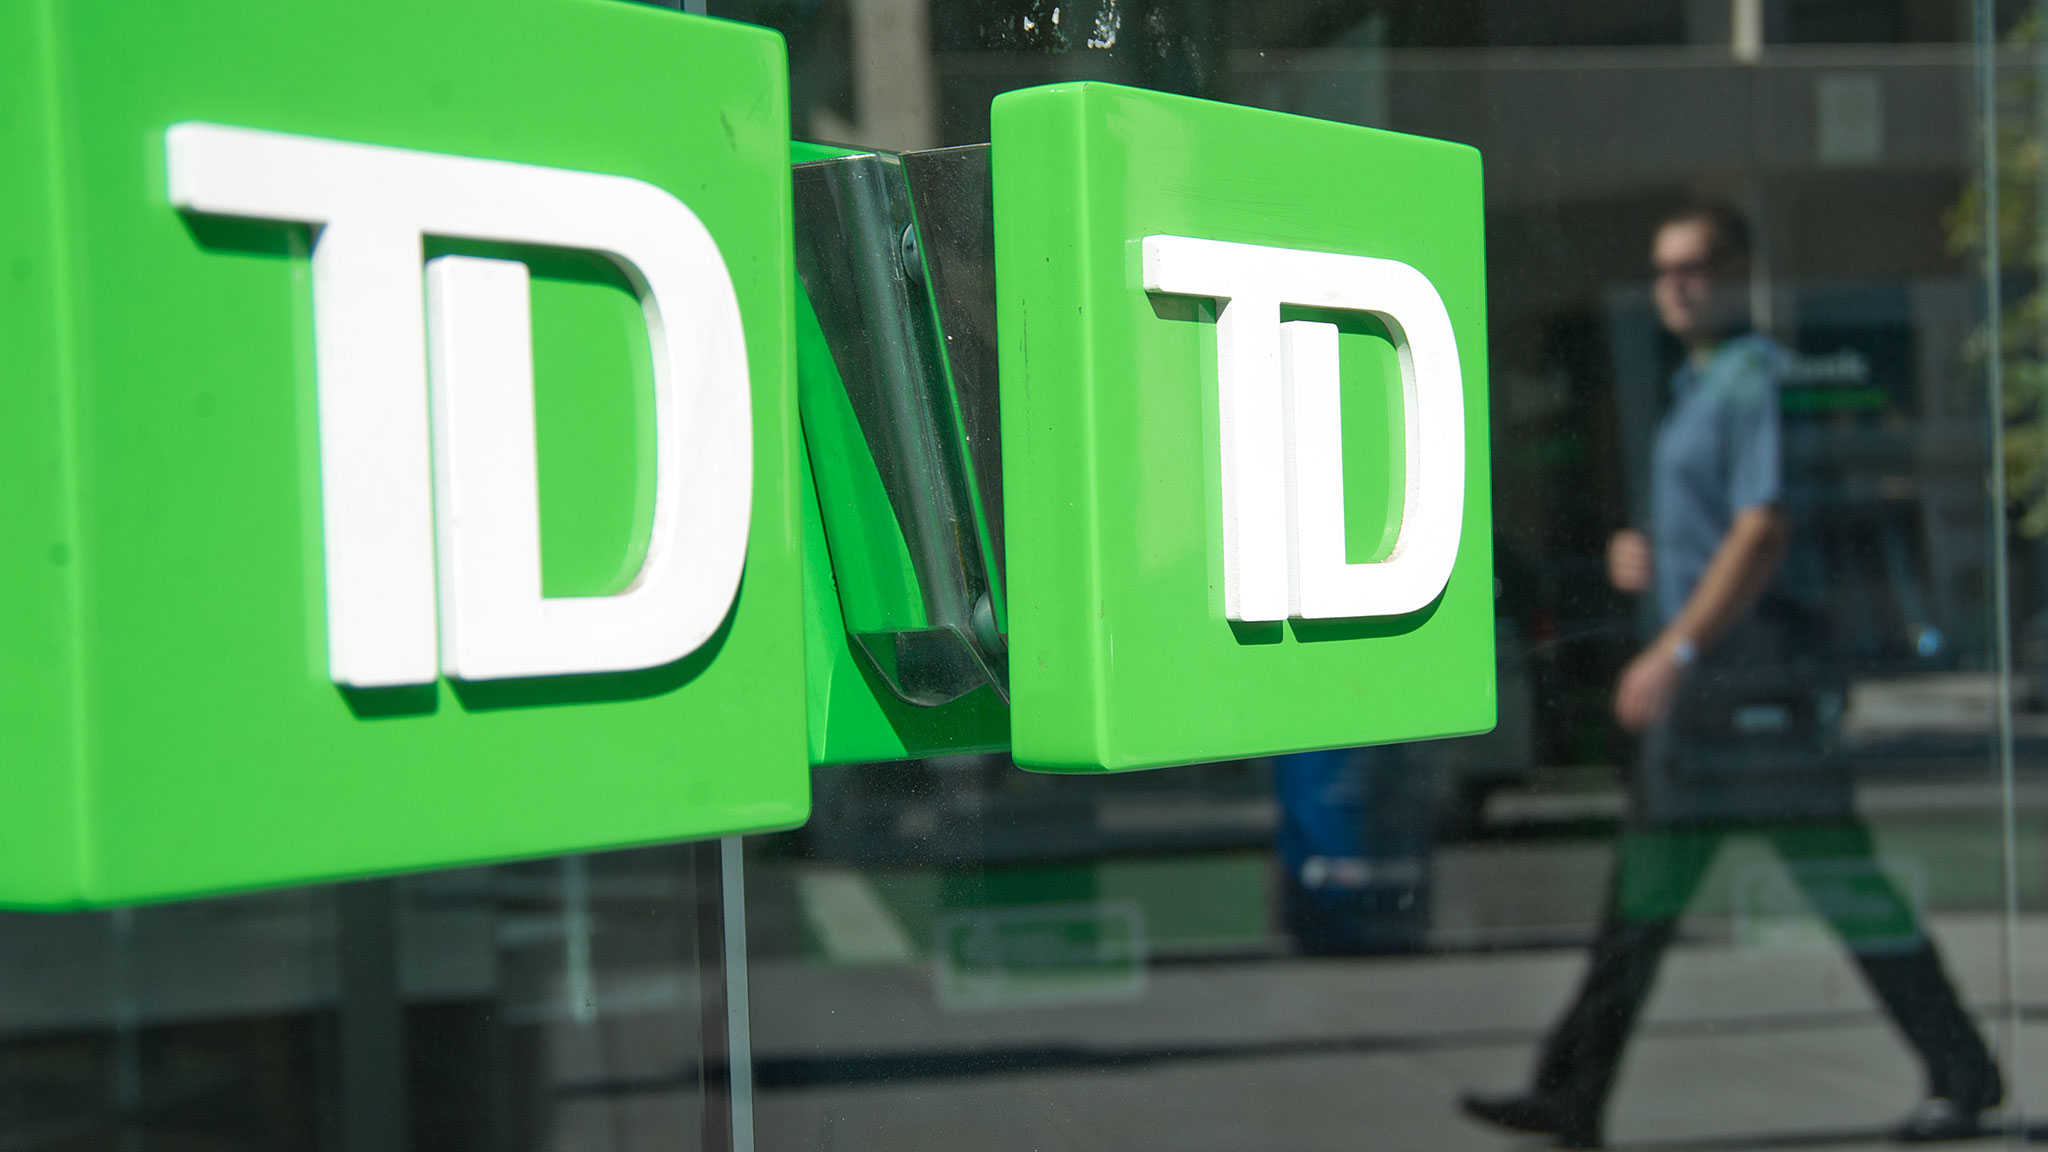 TD Bank bets on US branches as rivals cut back | Financial Times